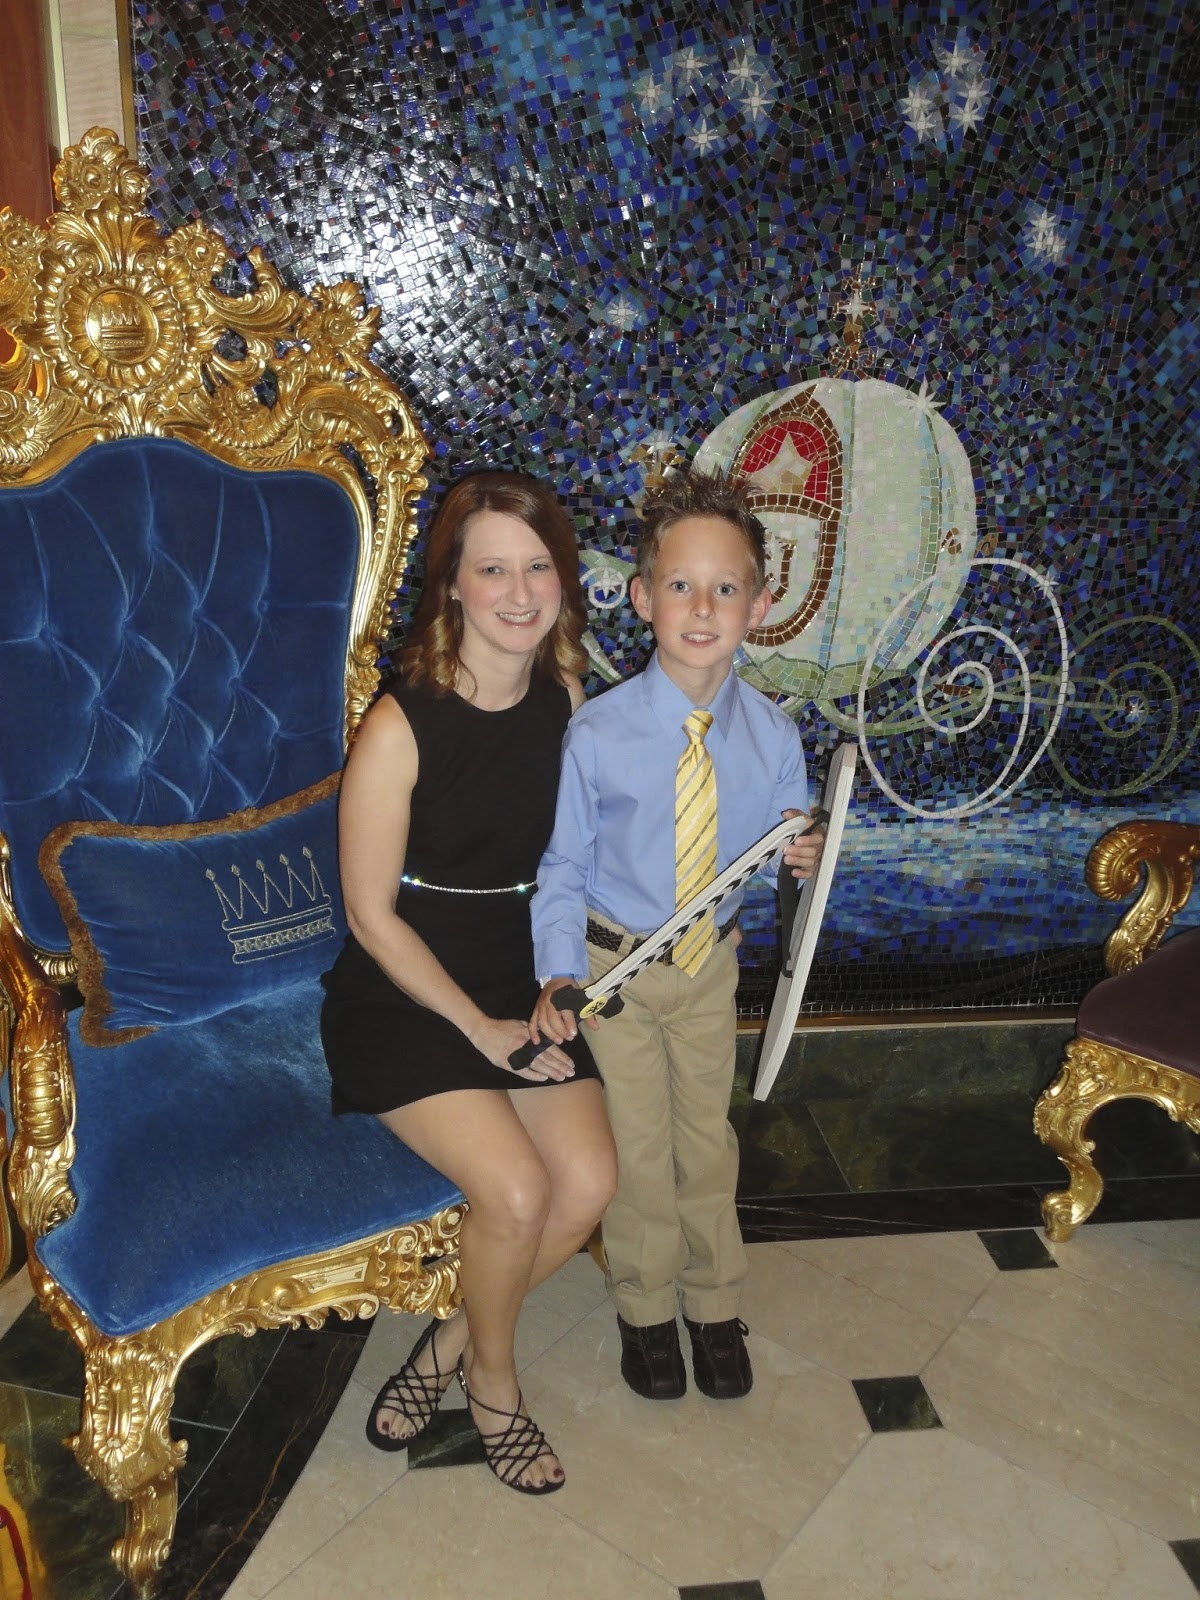 Wishdrawals Travel: What to Wear on a Disney Cruise: Part 2